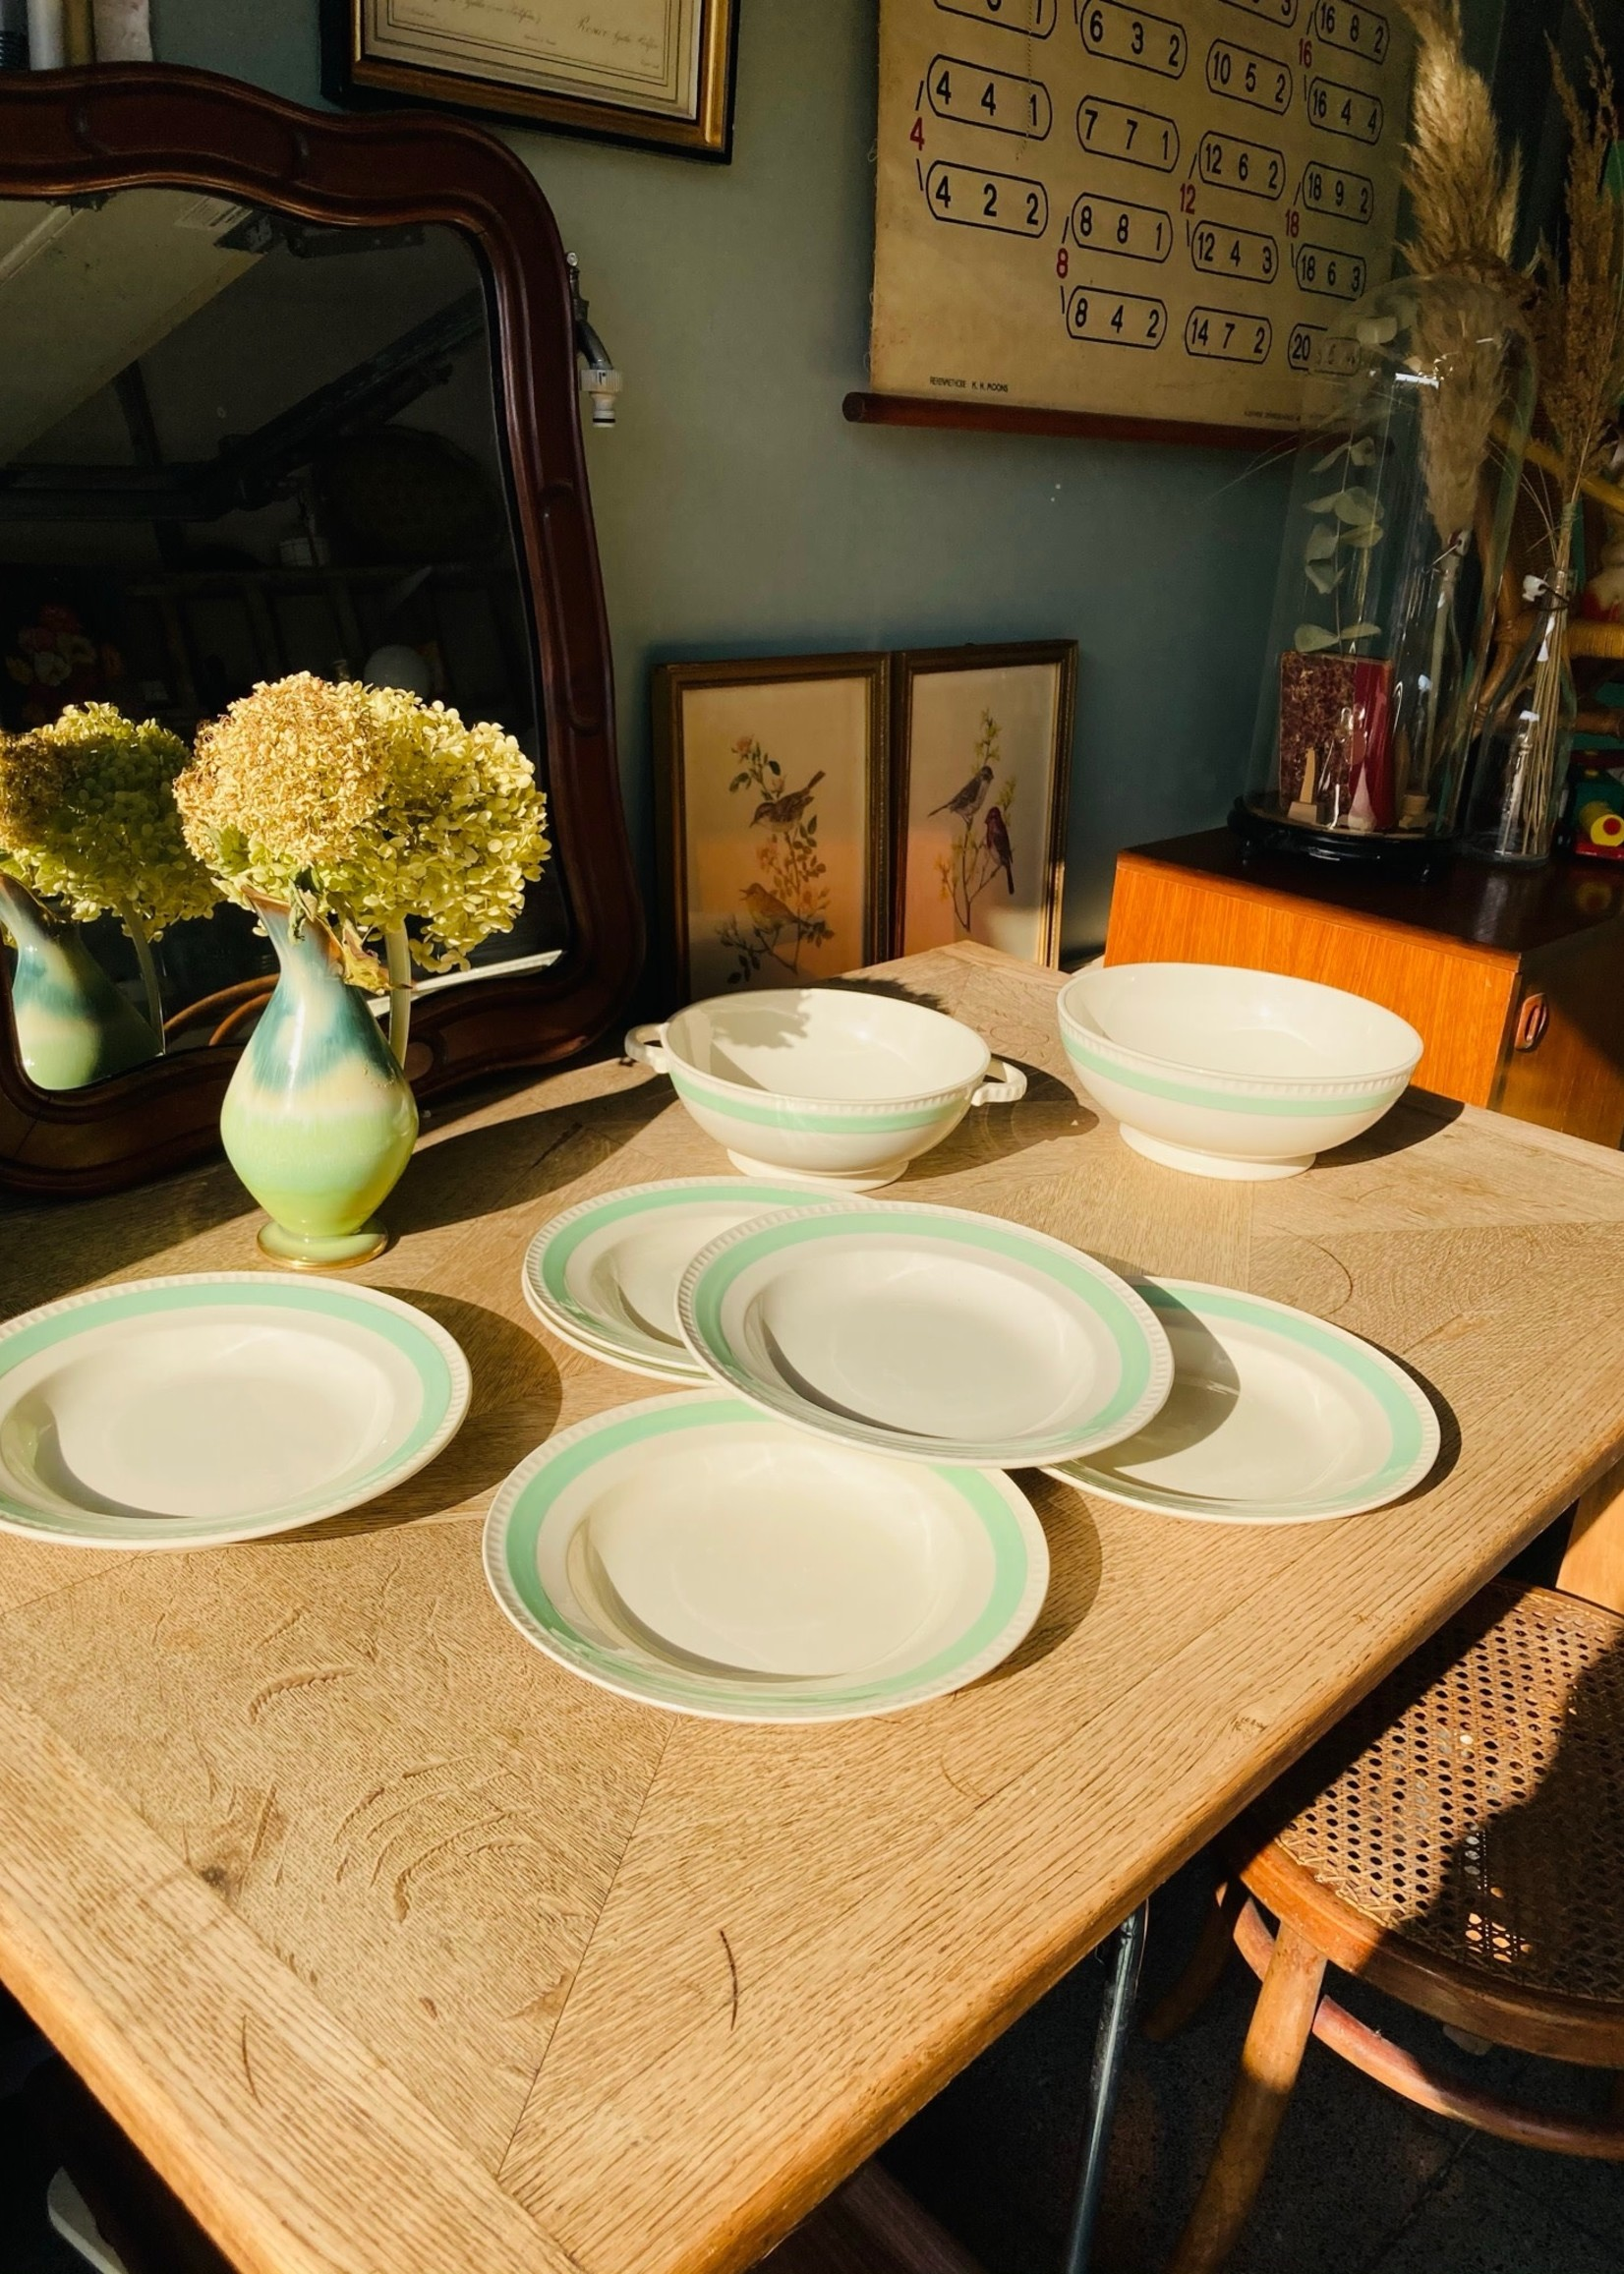 Deep plates with pastel green line on border